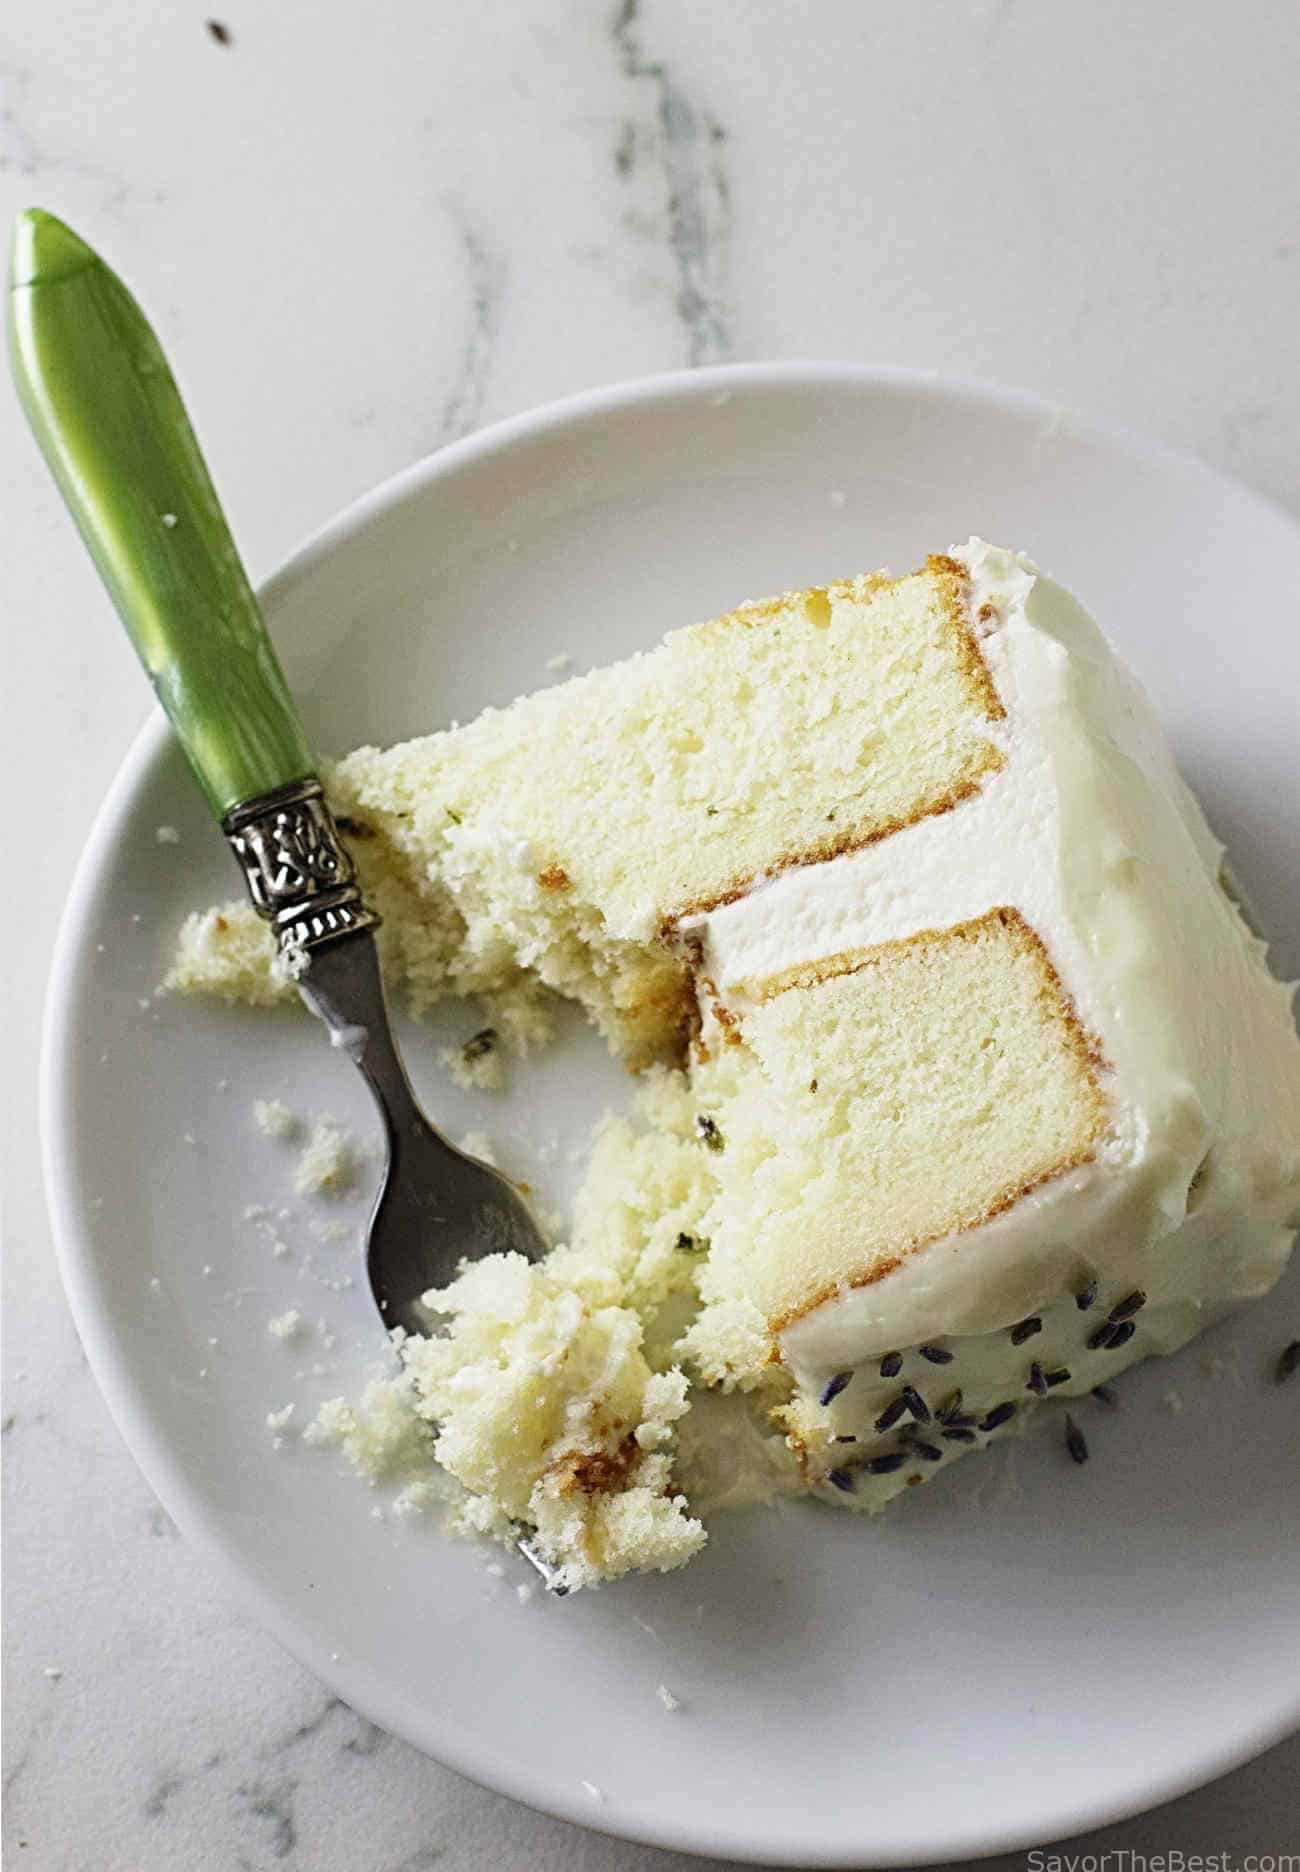 Lavender Cake with Lavender Cream Cheese Icing - Savor the Best